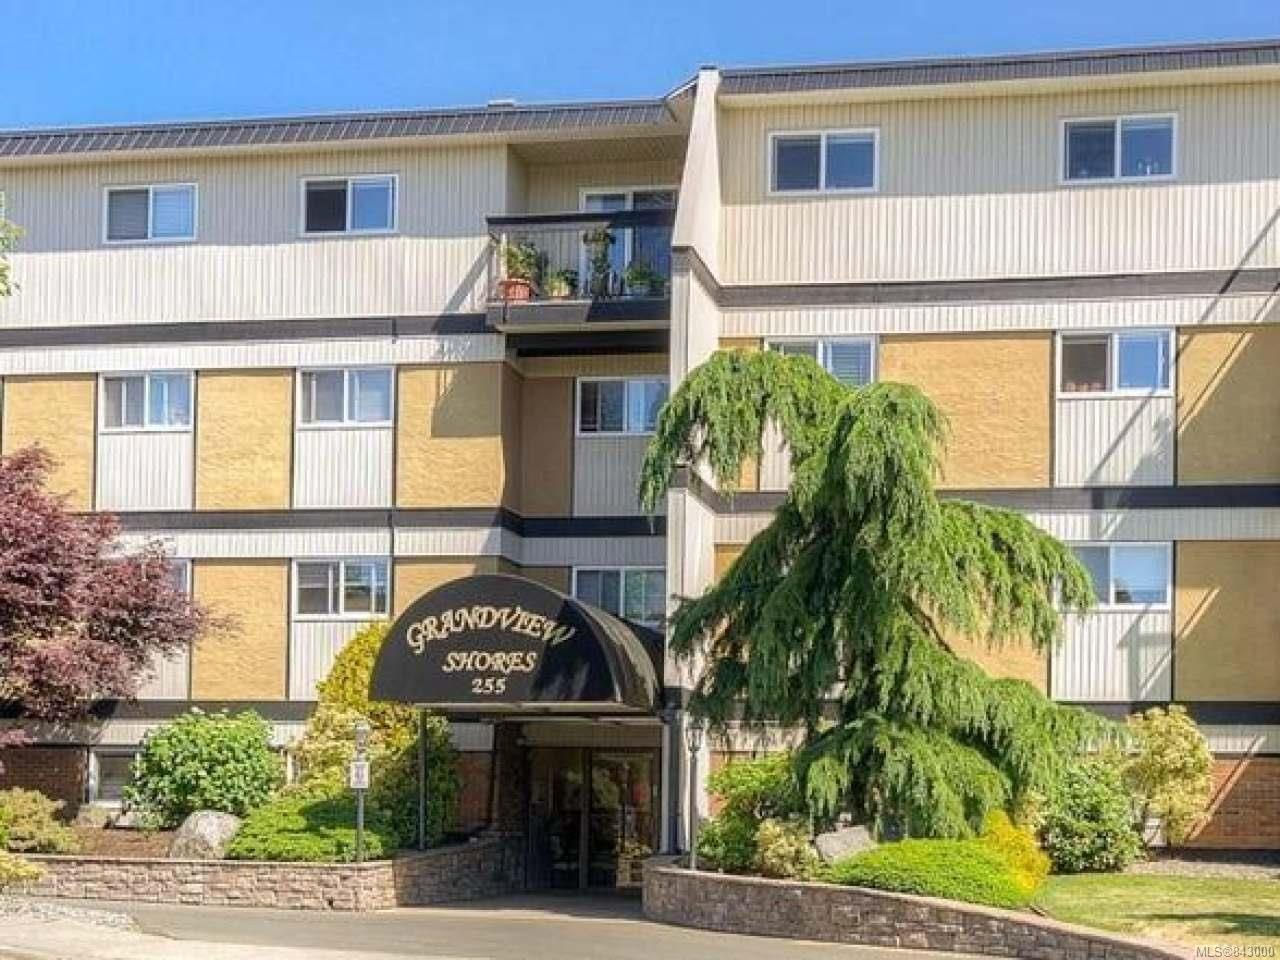 Photo 10: Photos: 405 255 W Hirst Ave in PARKSVILLE: PQ Parksville Condo for sale (Parksville/Qualicum)  : MLS®# 843000